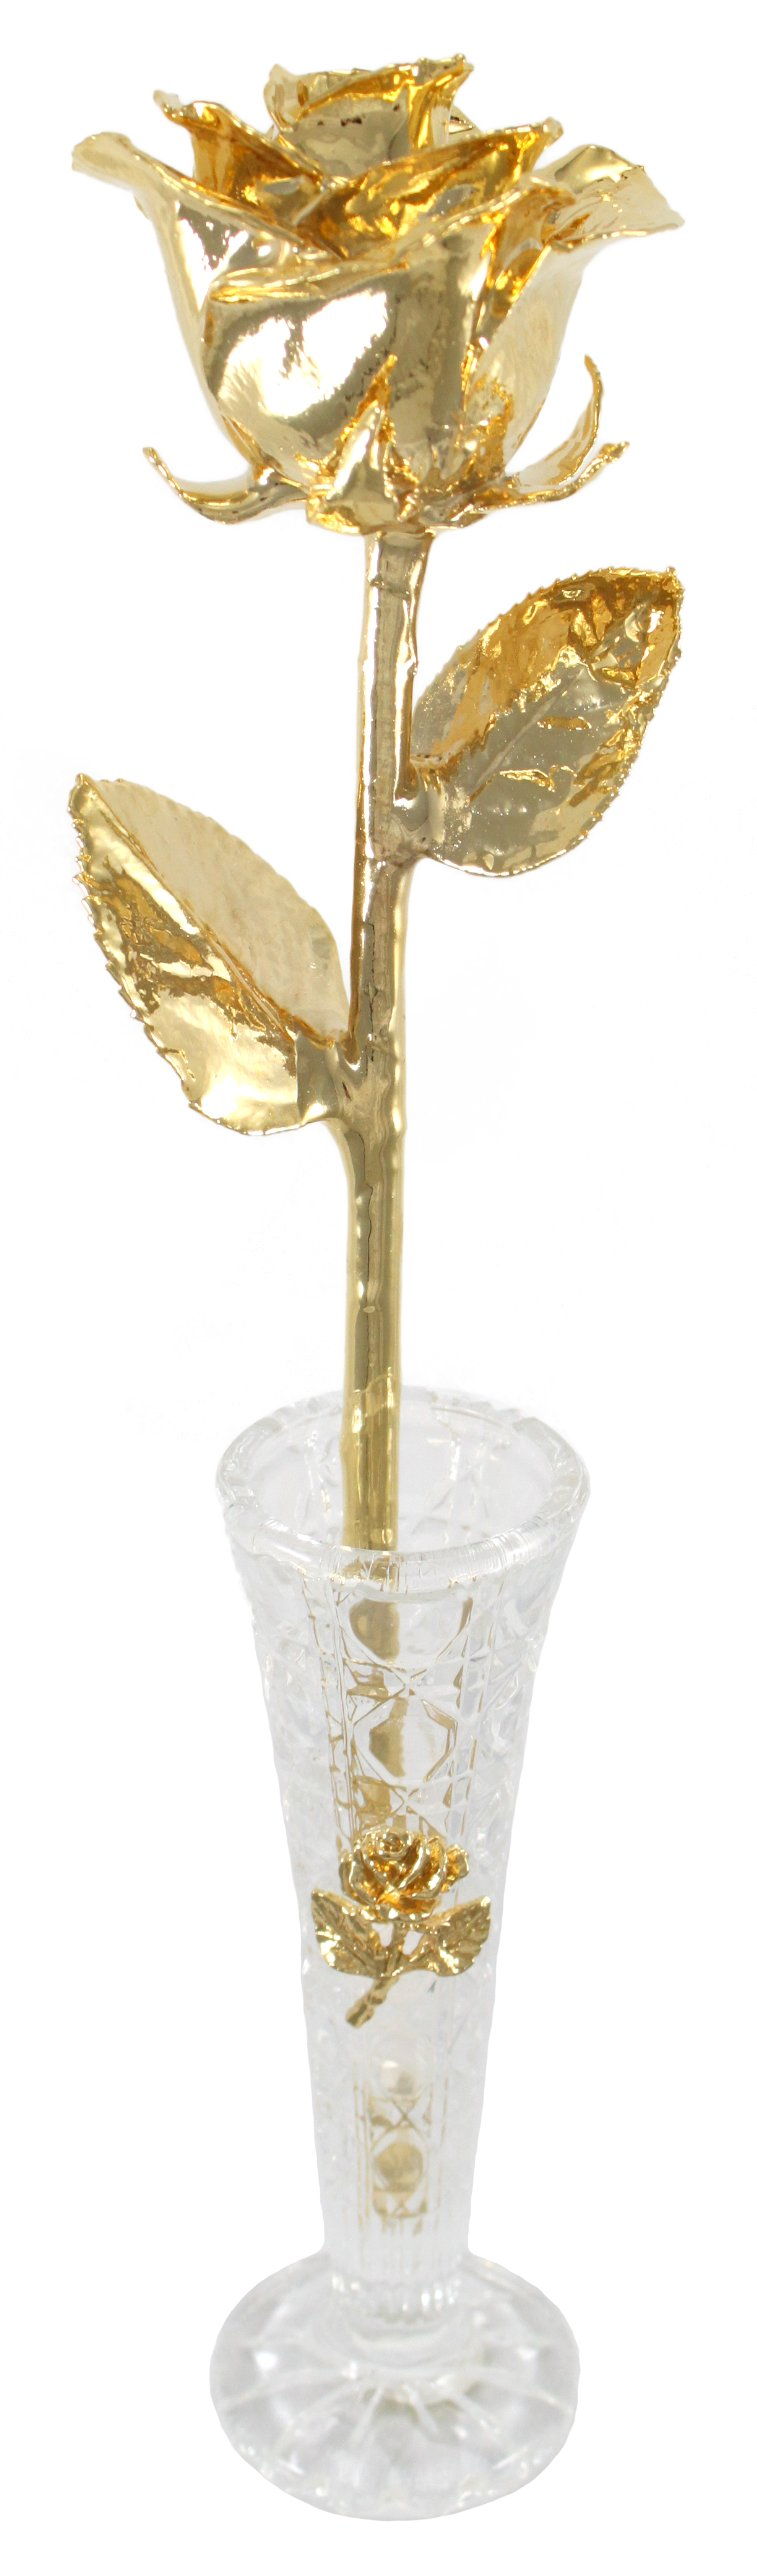 "Real Rose Dipped in 24k Gold w/Crystal Vase - Venus Rose (Open Bud) - Real 12"" Rose by Living Gold Fully Plated in 24k Gold 6"" Genuine Crystal Vase with tiny gold-plated metal rose - vases, kitchen-dining-room-decor, kitchen-dining-room - 71LddIKhQsL -"